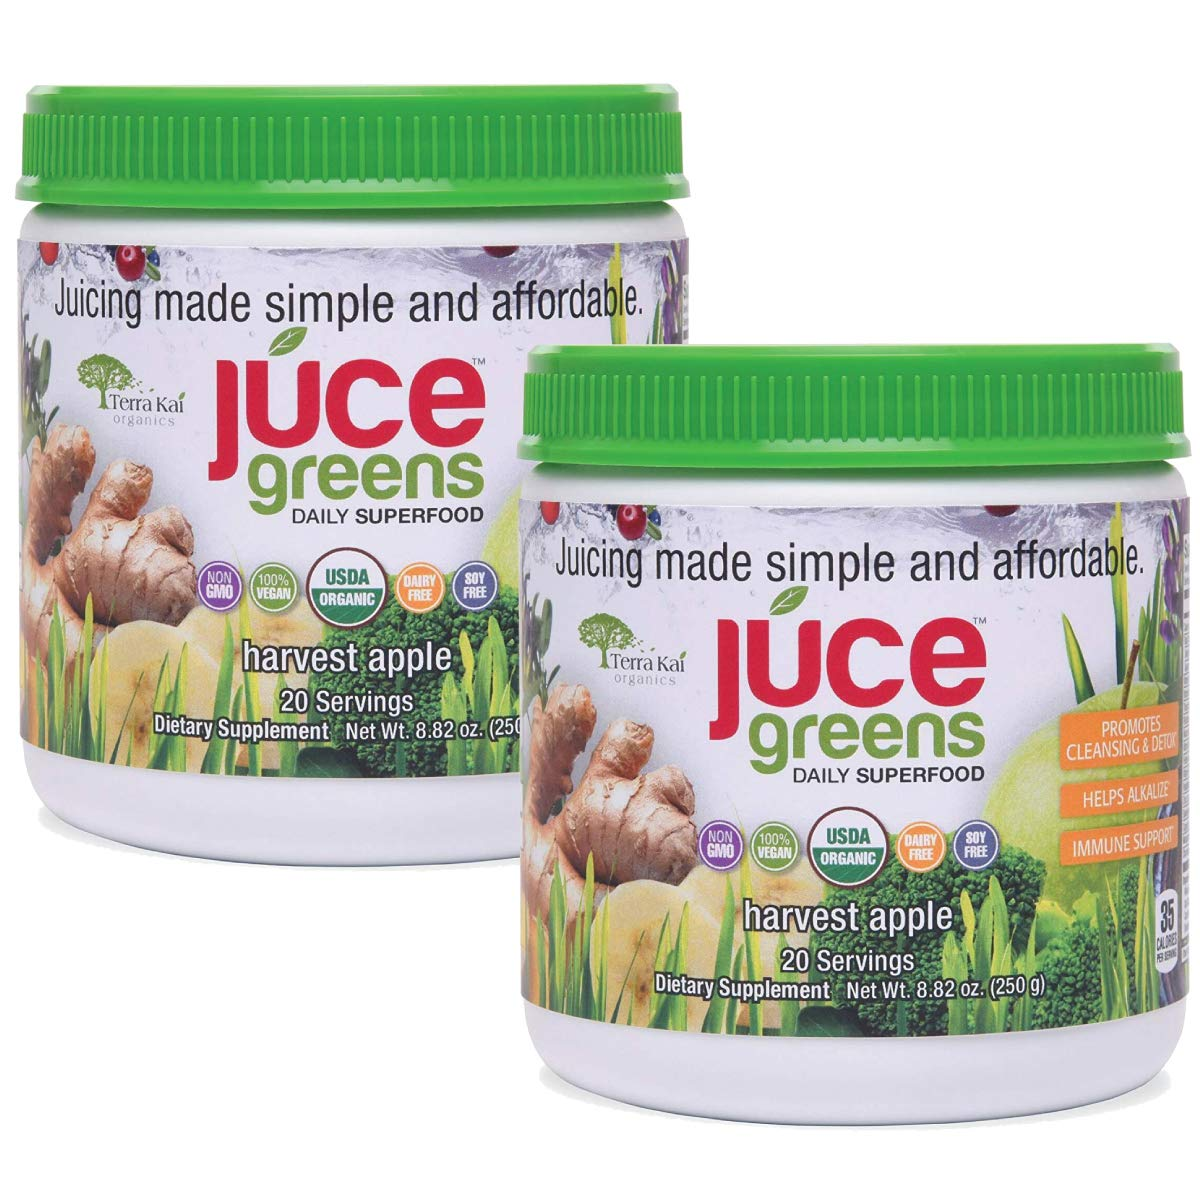 JUCE Greens Superfood Two Packs | Natural Energy & Detox Blends | Certified USDA Organic 20 Servings Per Container - 2 Pack (Harvest Apple Two Pack)